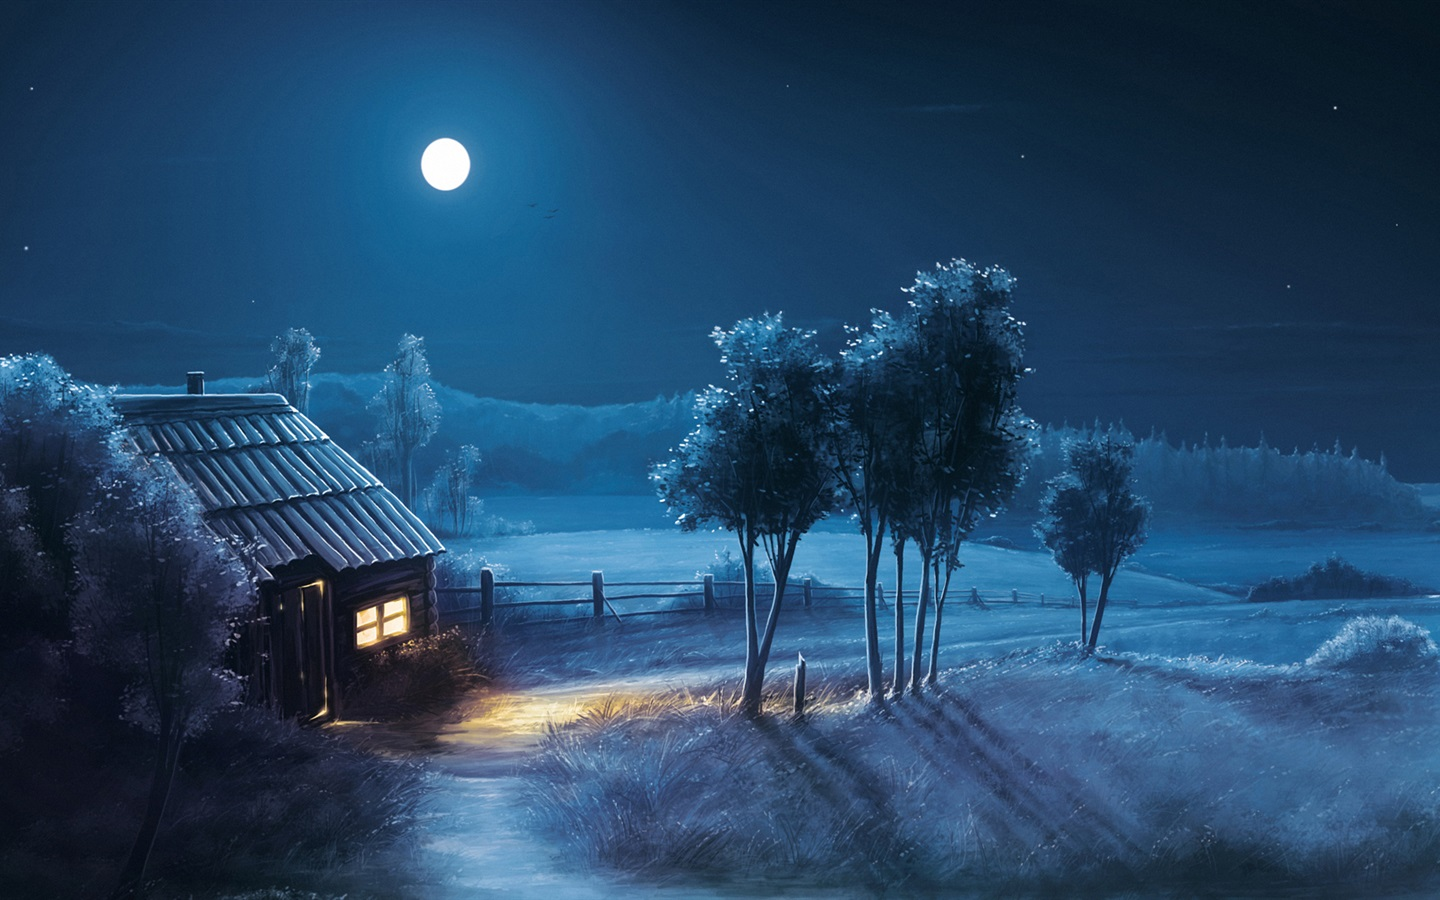 艺术设计,夜晚,月亮,房子,田野,树木 壁纸 ...: cn.best-wallpaper.net/art-design-night-moon-house-fields-trees...